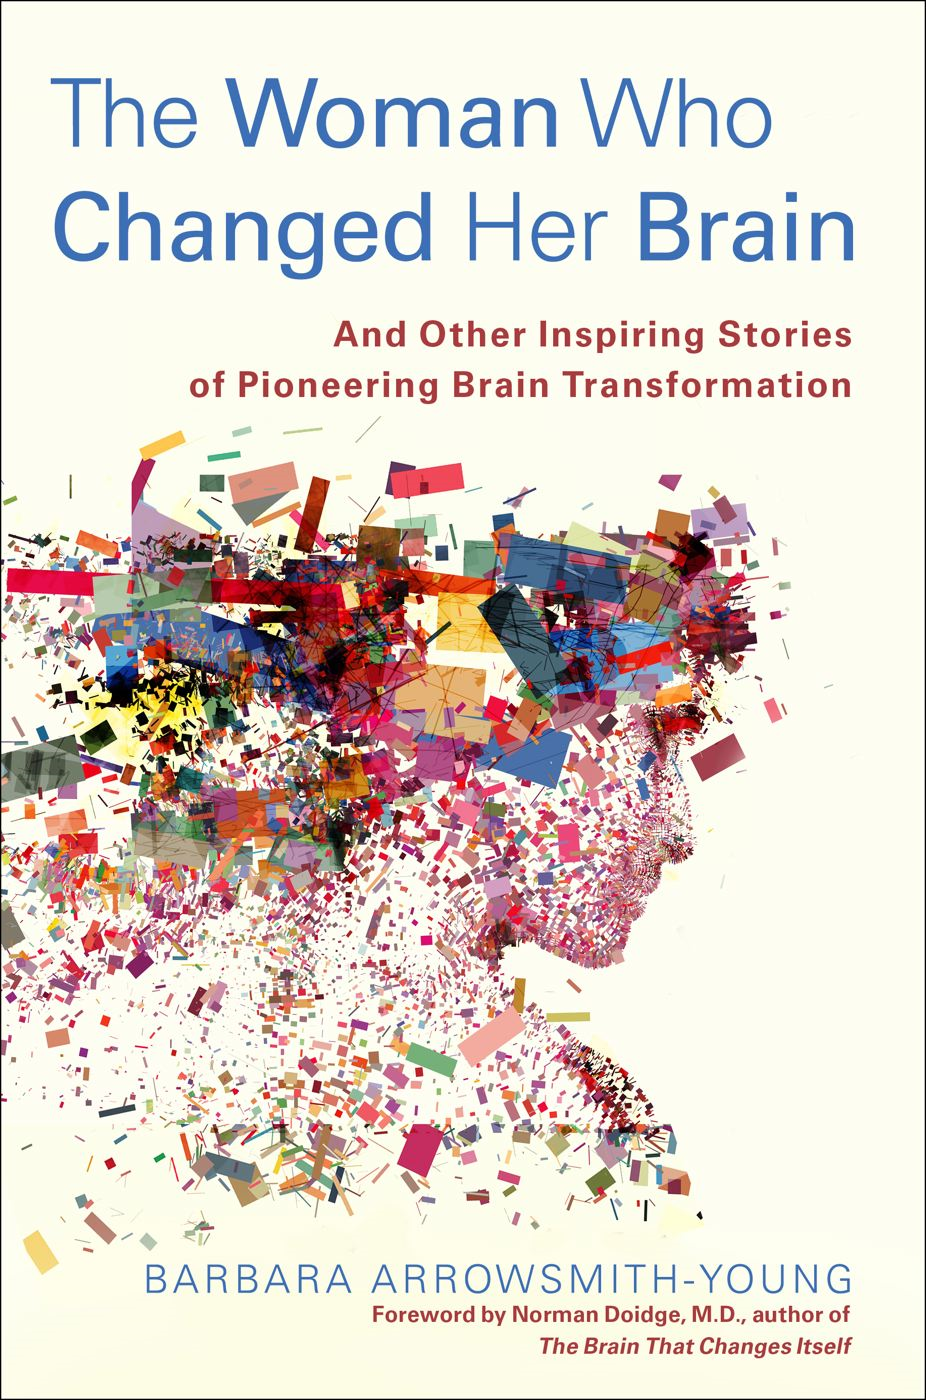 The Woman Who Changed Her Brain By: Barbara Arrowsmith-Young